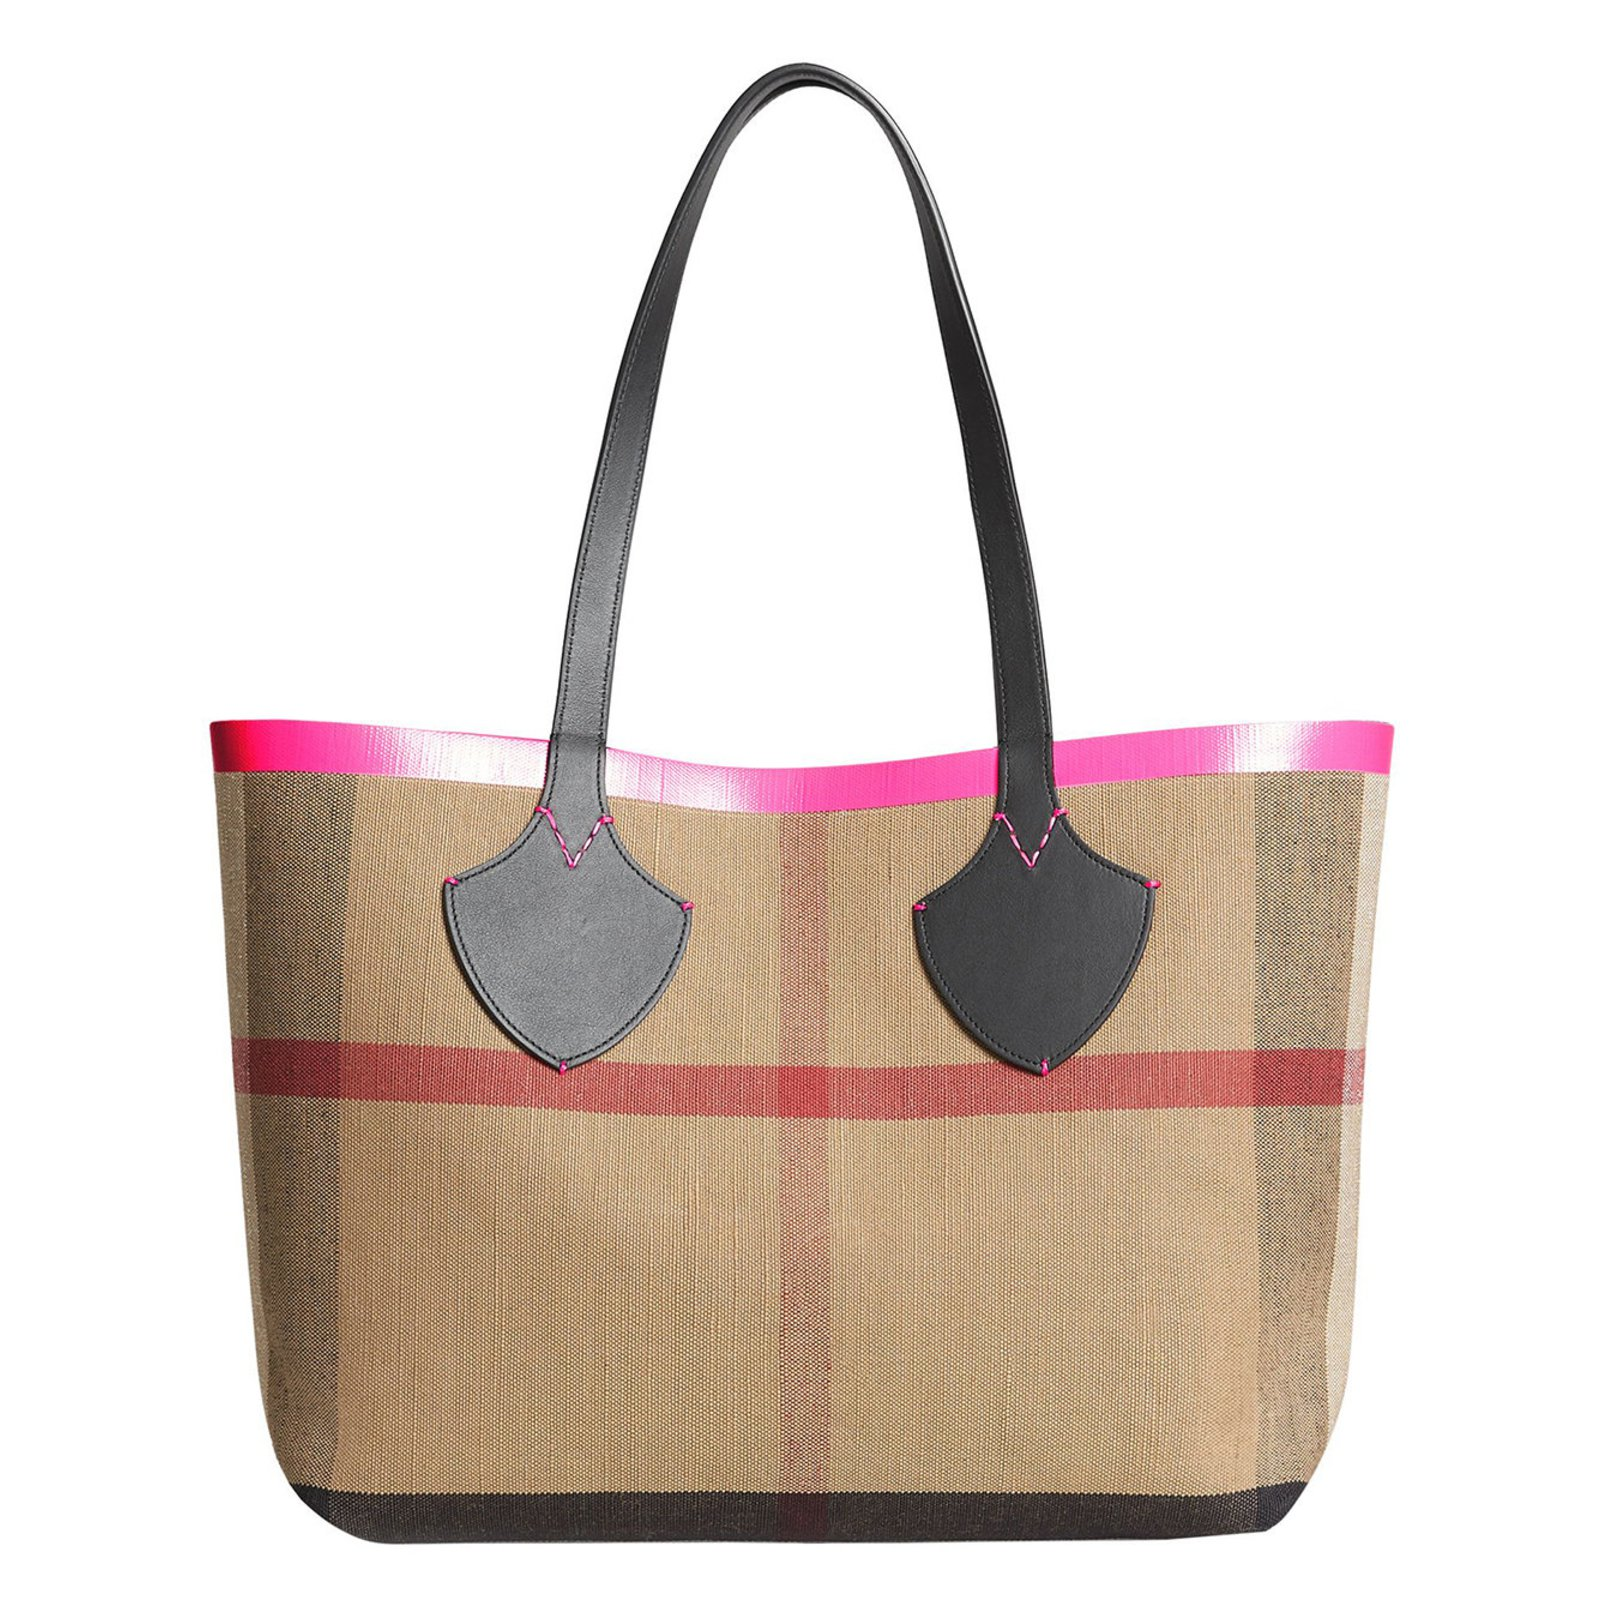 Burberry Reverse Tote Bag New Handbags Other Ref 73821